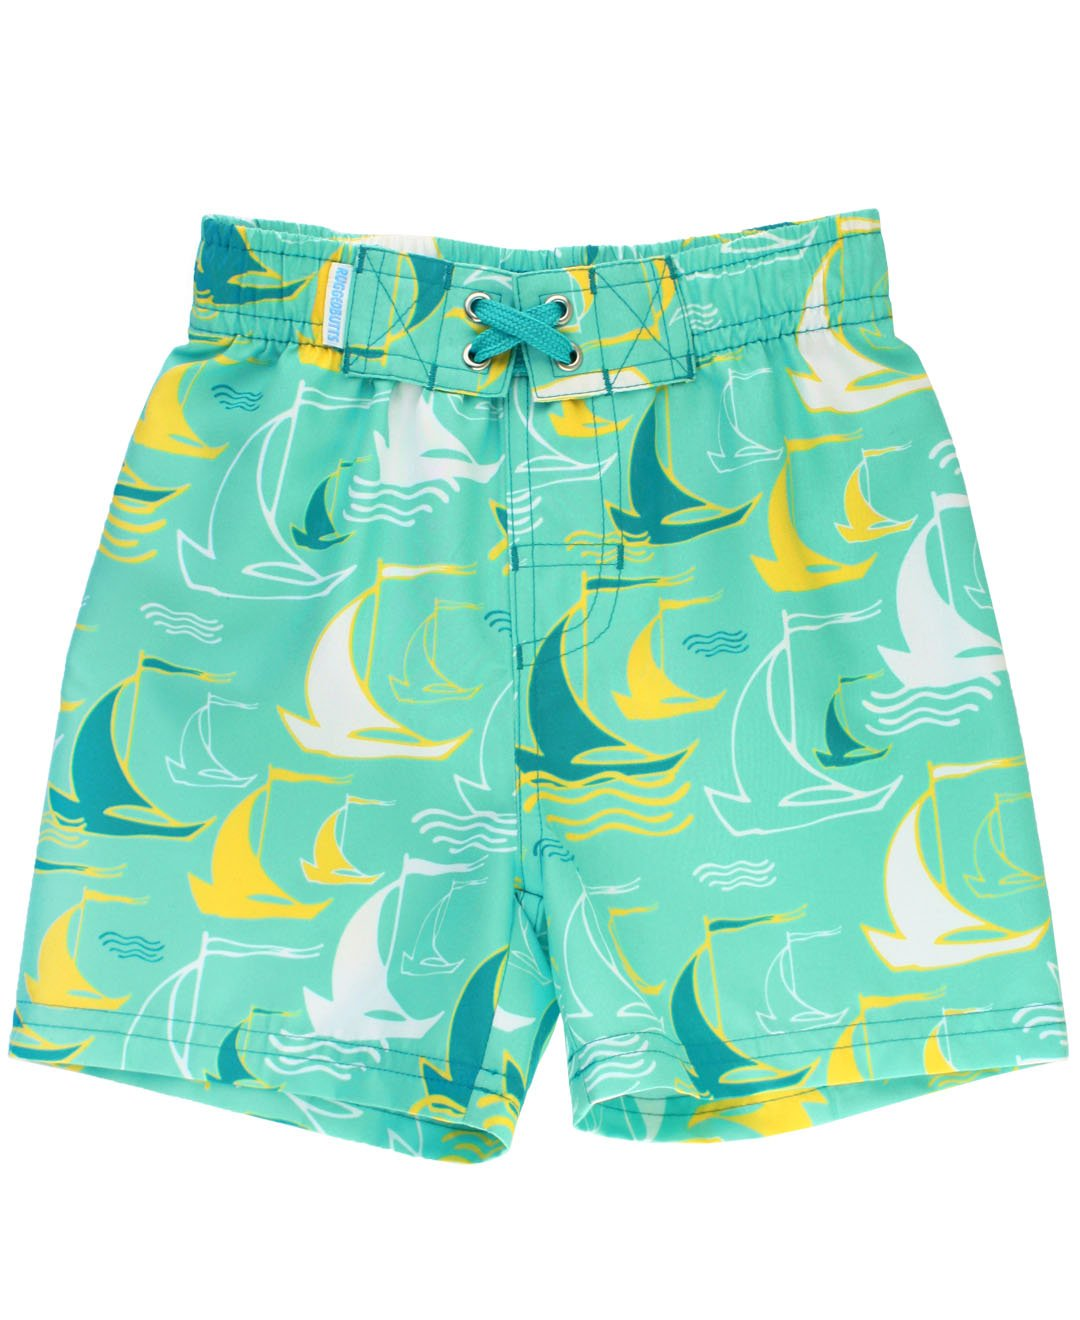 12d0dac857d69 RuggedButts Infant/Toddler Boys Sailboat Swim Trunks w/Adjustable Waistband  - Blue - 3-6m: Amazon.in: Baby